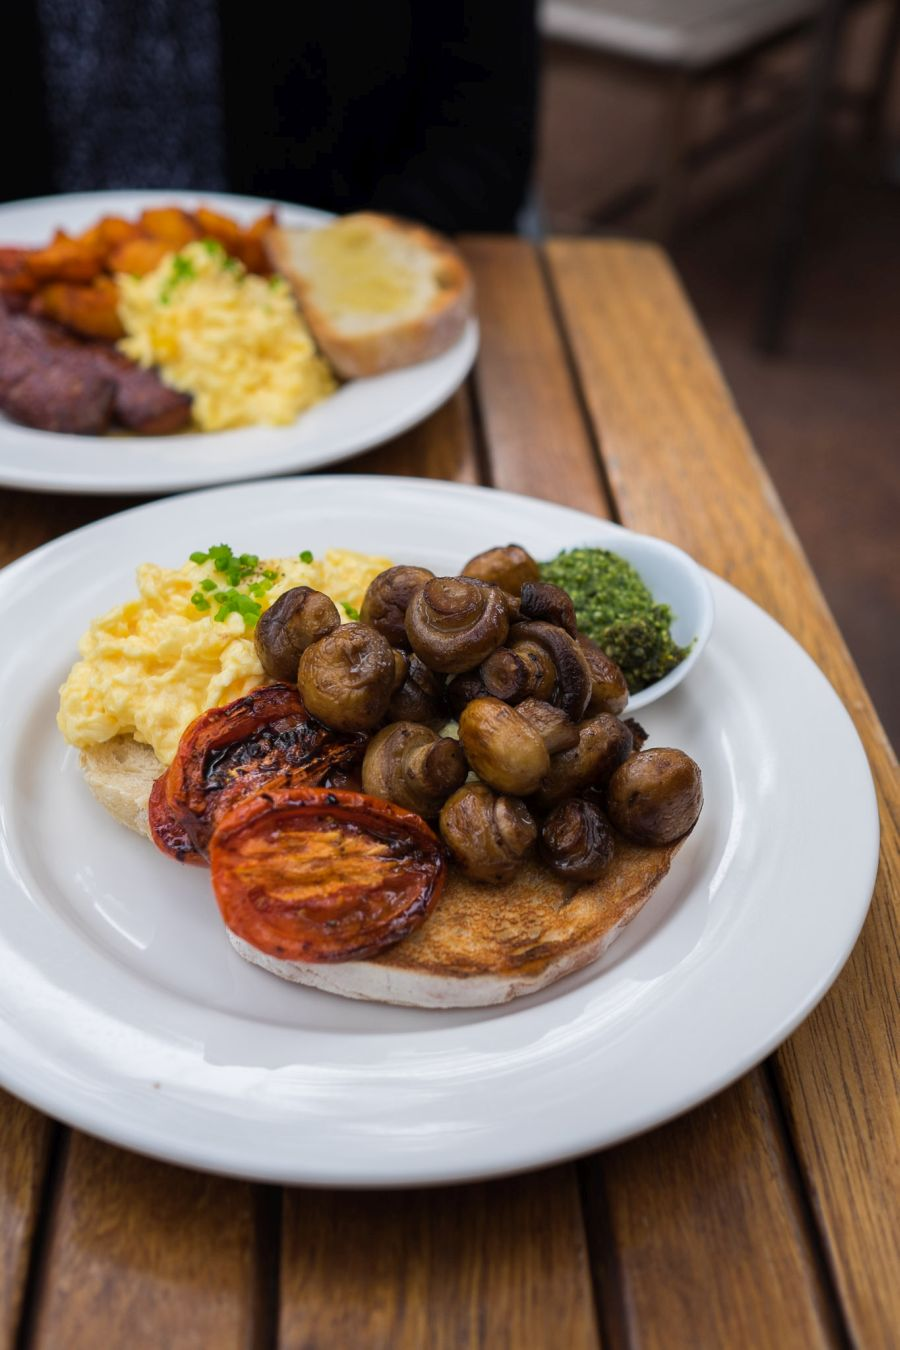 Bush Breakfast - scrambled eggs, wood-fired toast, mushrooms, tomatoes and pesto (AU$19)